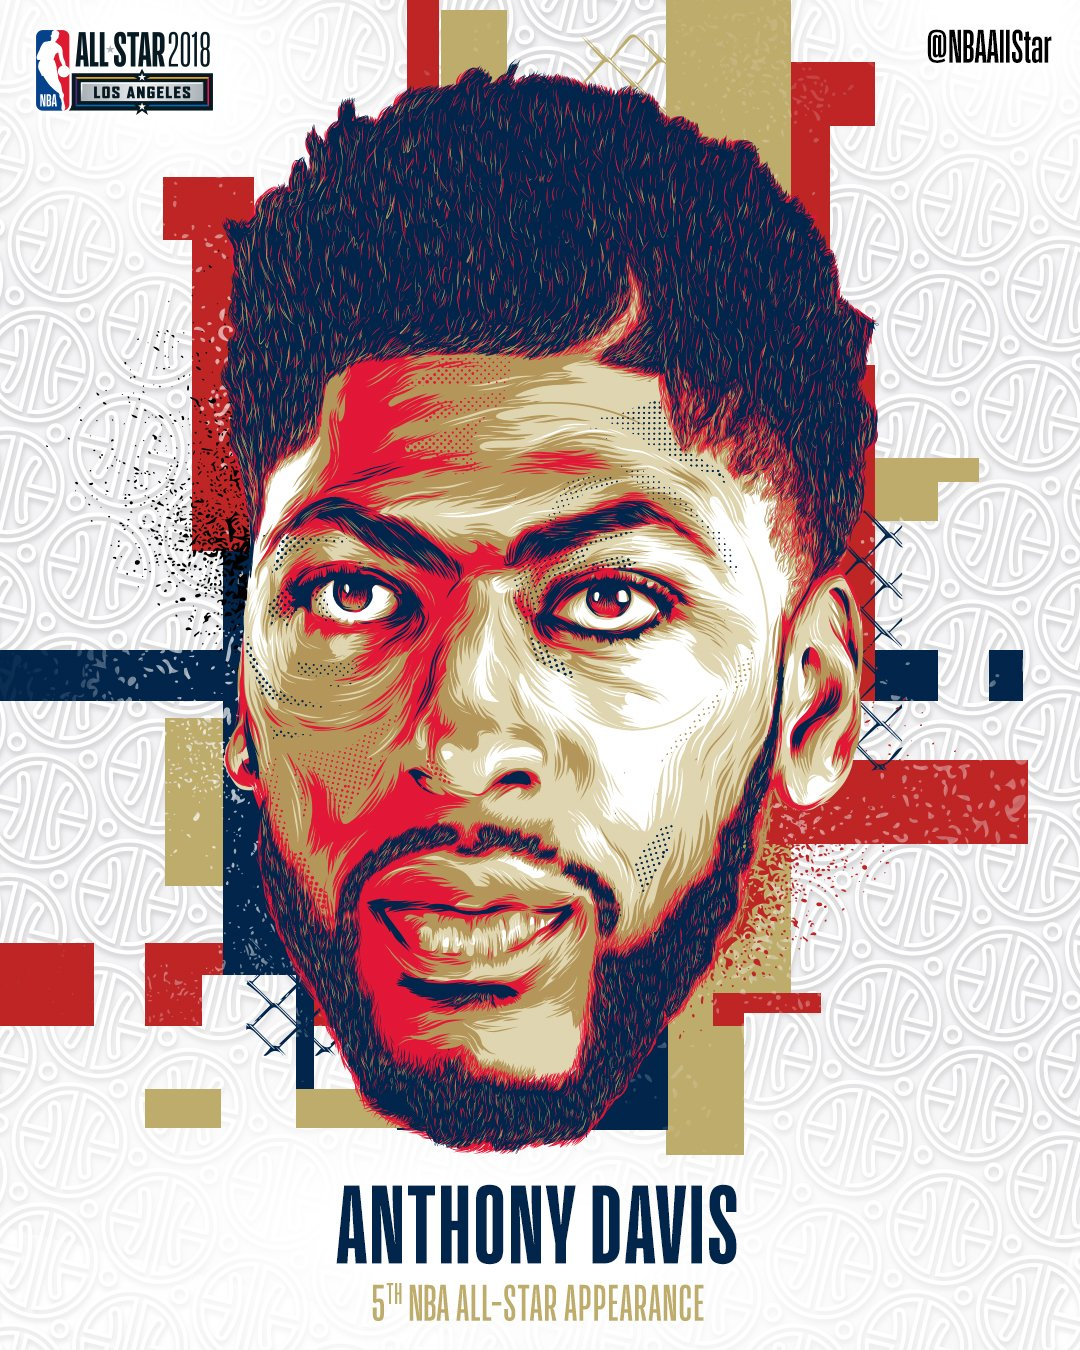 Making his 5th #NBAAllStar appearance... @AntDavis23 of the @PelicansNBA!   #DoItBig #AnthonyDavis https://t.co/eUOvuk6aQZ